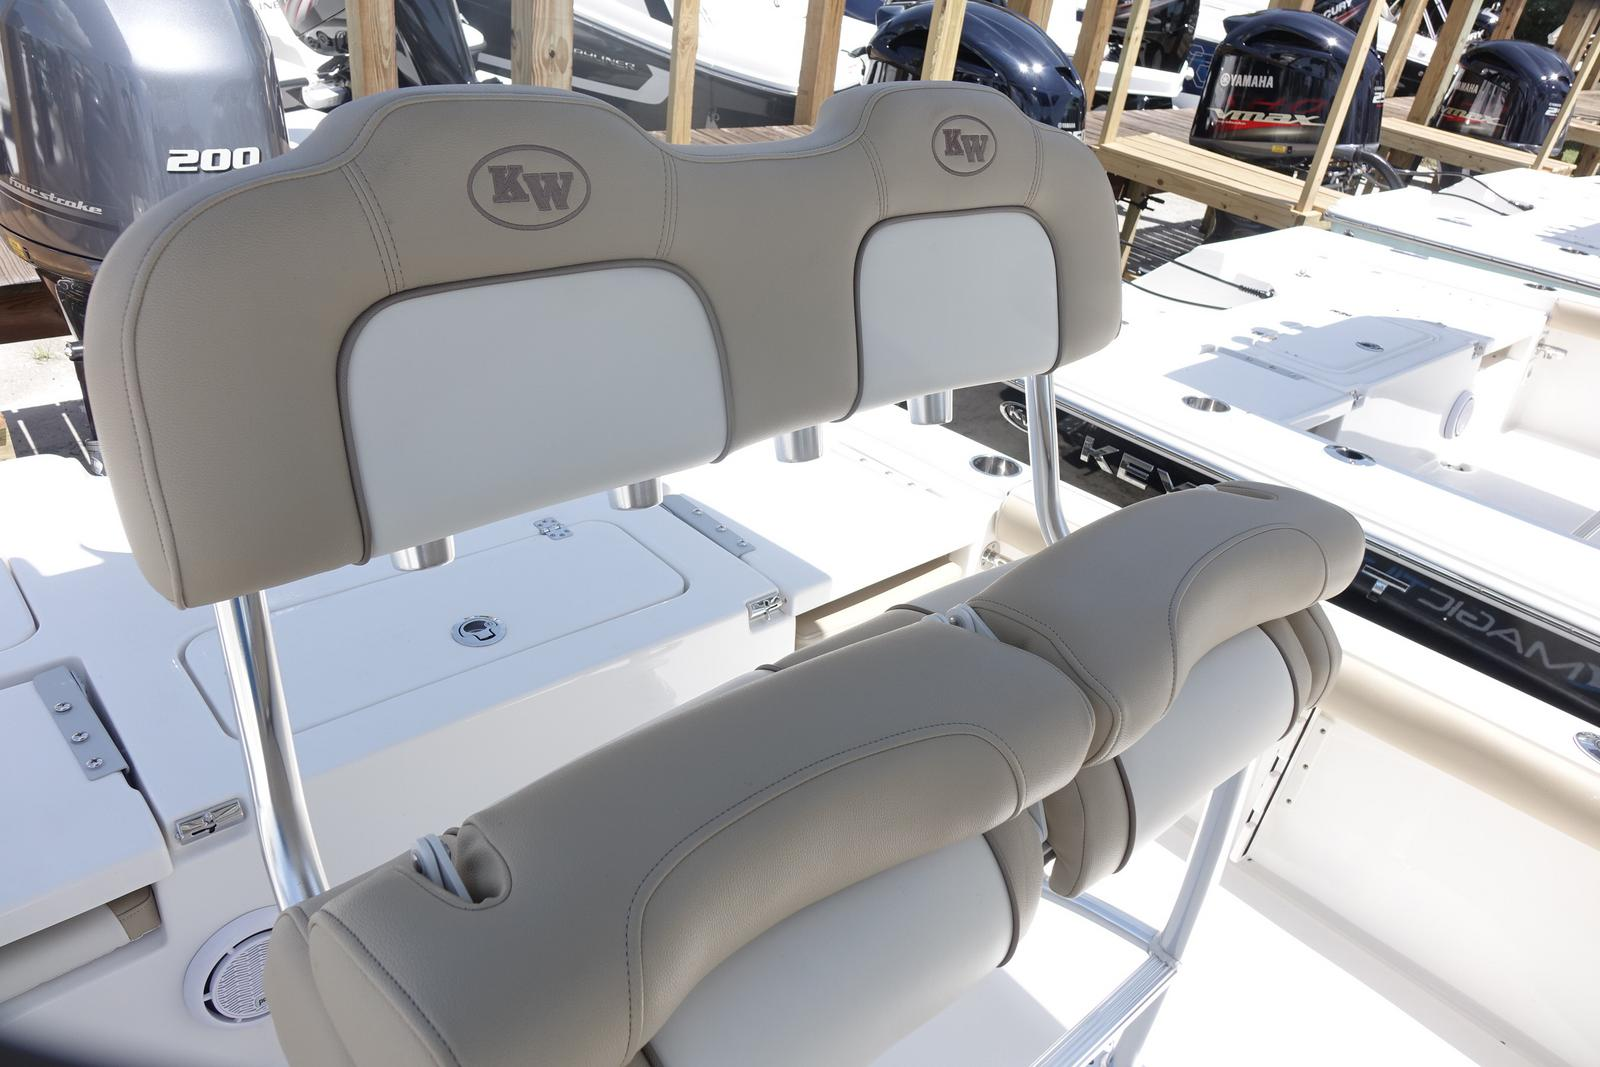 2019 Key West 210 BR for sale in Longwood, FL  BMC Boats Longwood